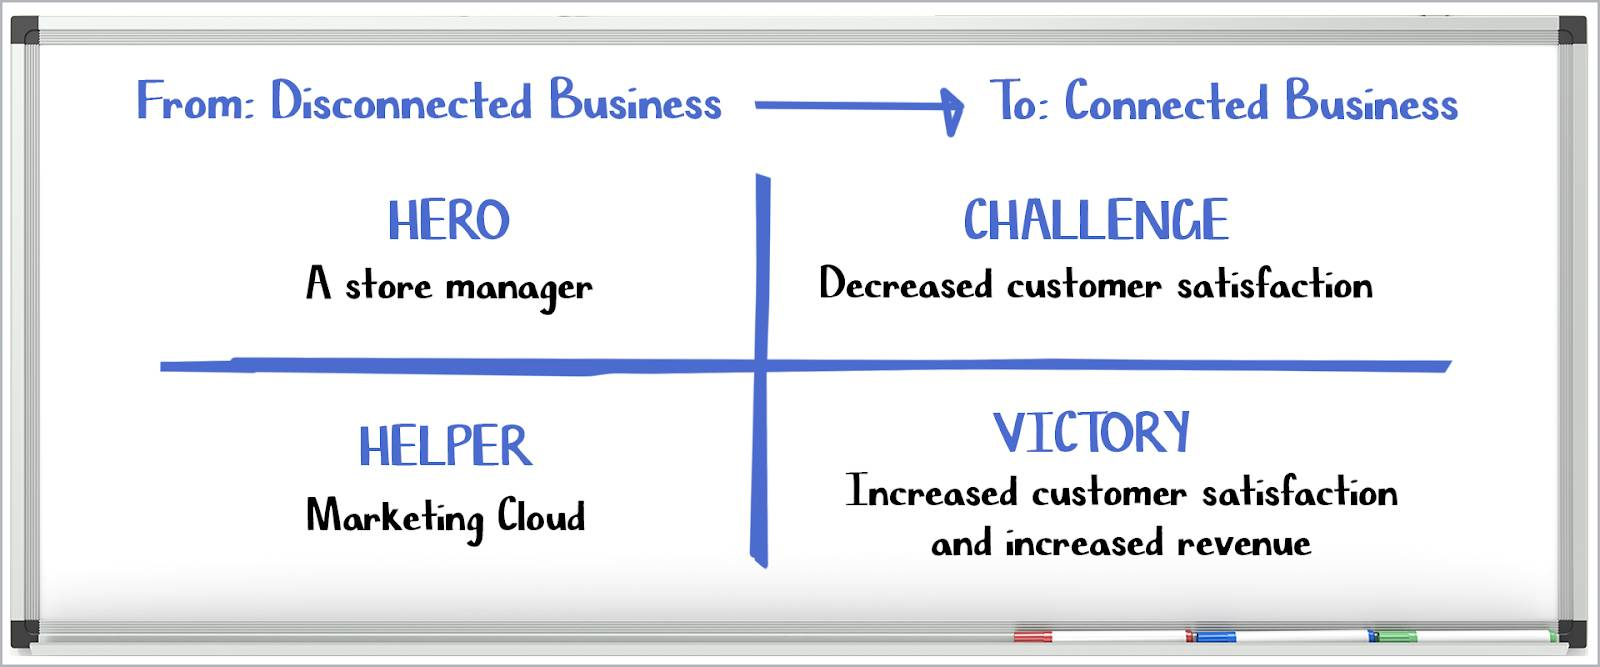 Whiteboard with four quadrants taking you from disconnected business to connected business, as described in the paragraph